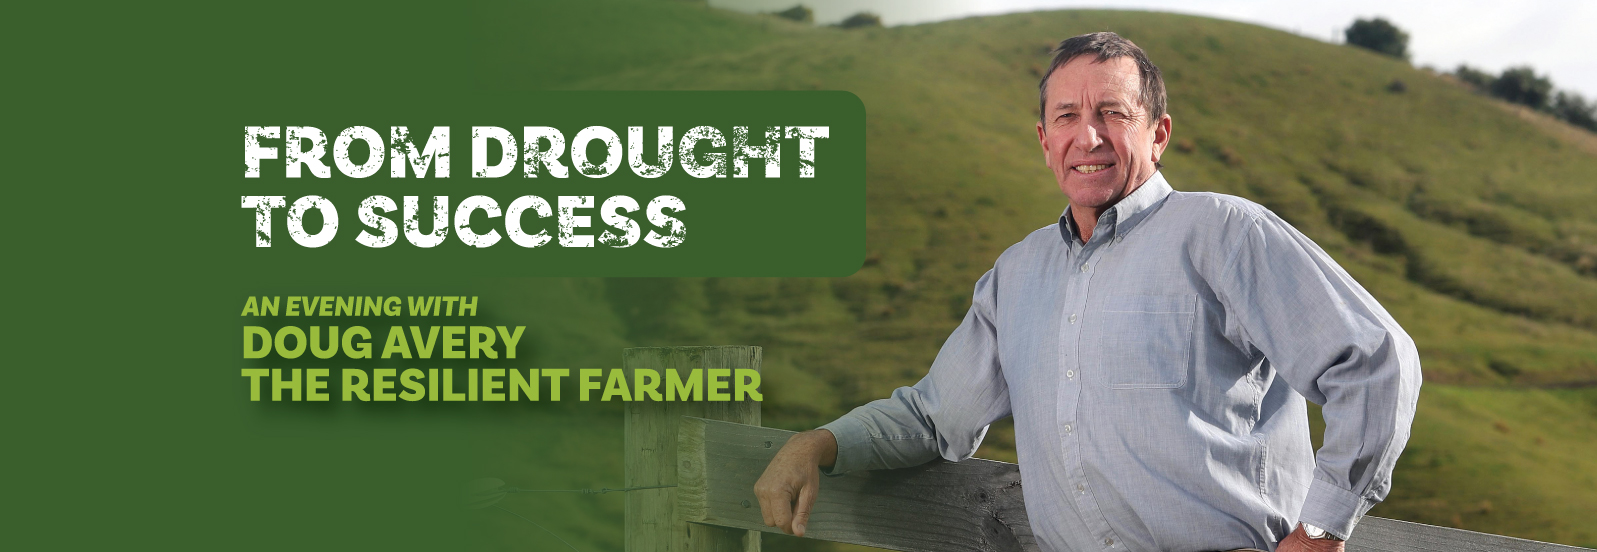 From Drought to Success with Doug Avery